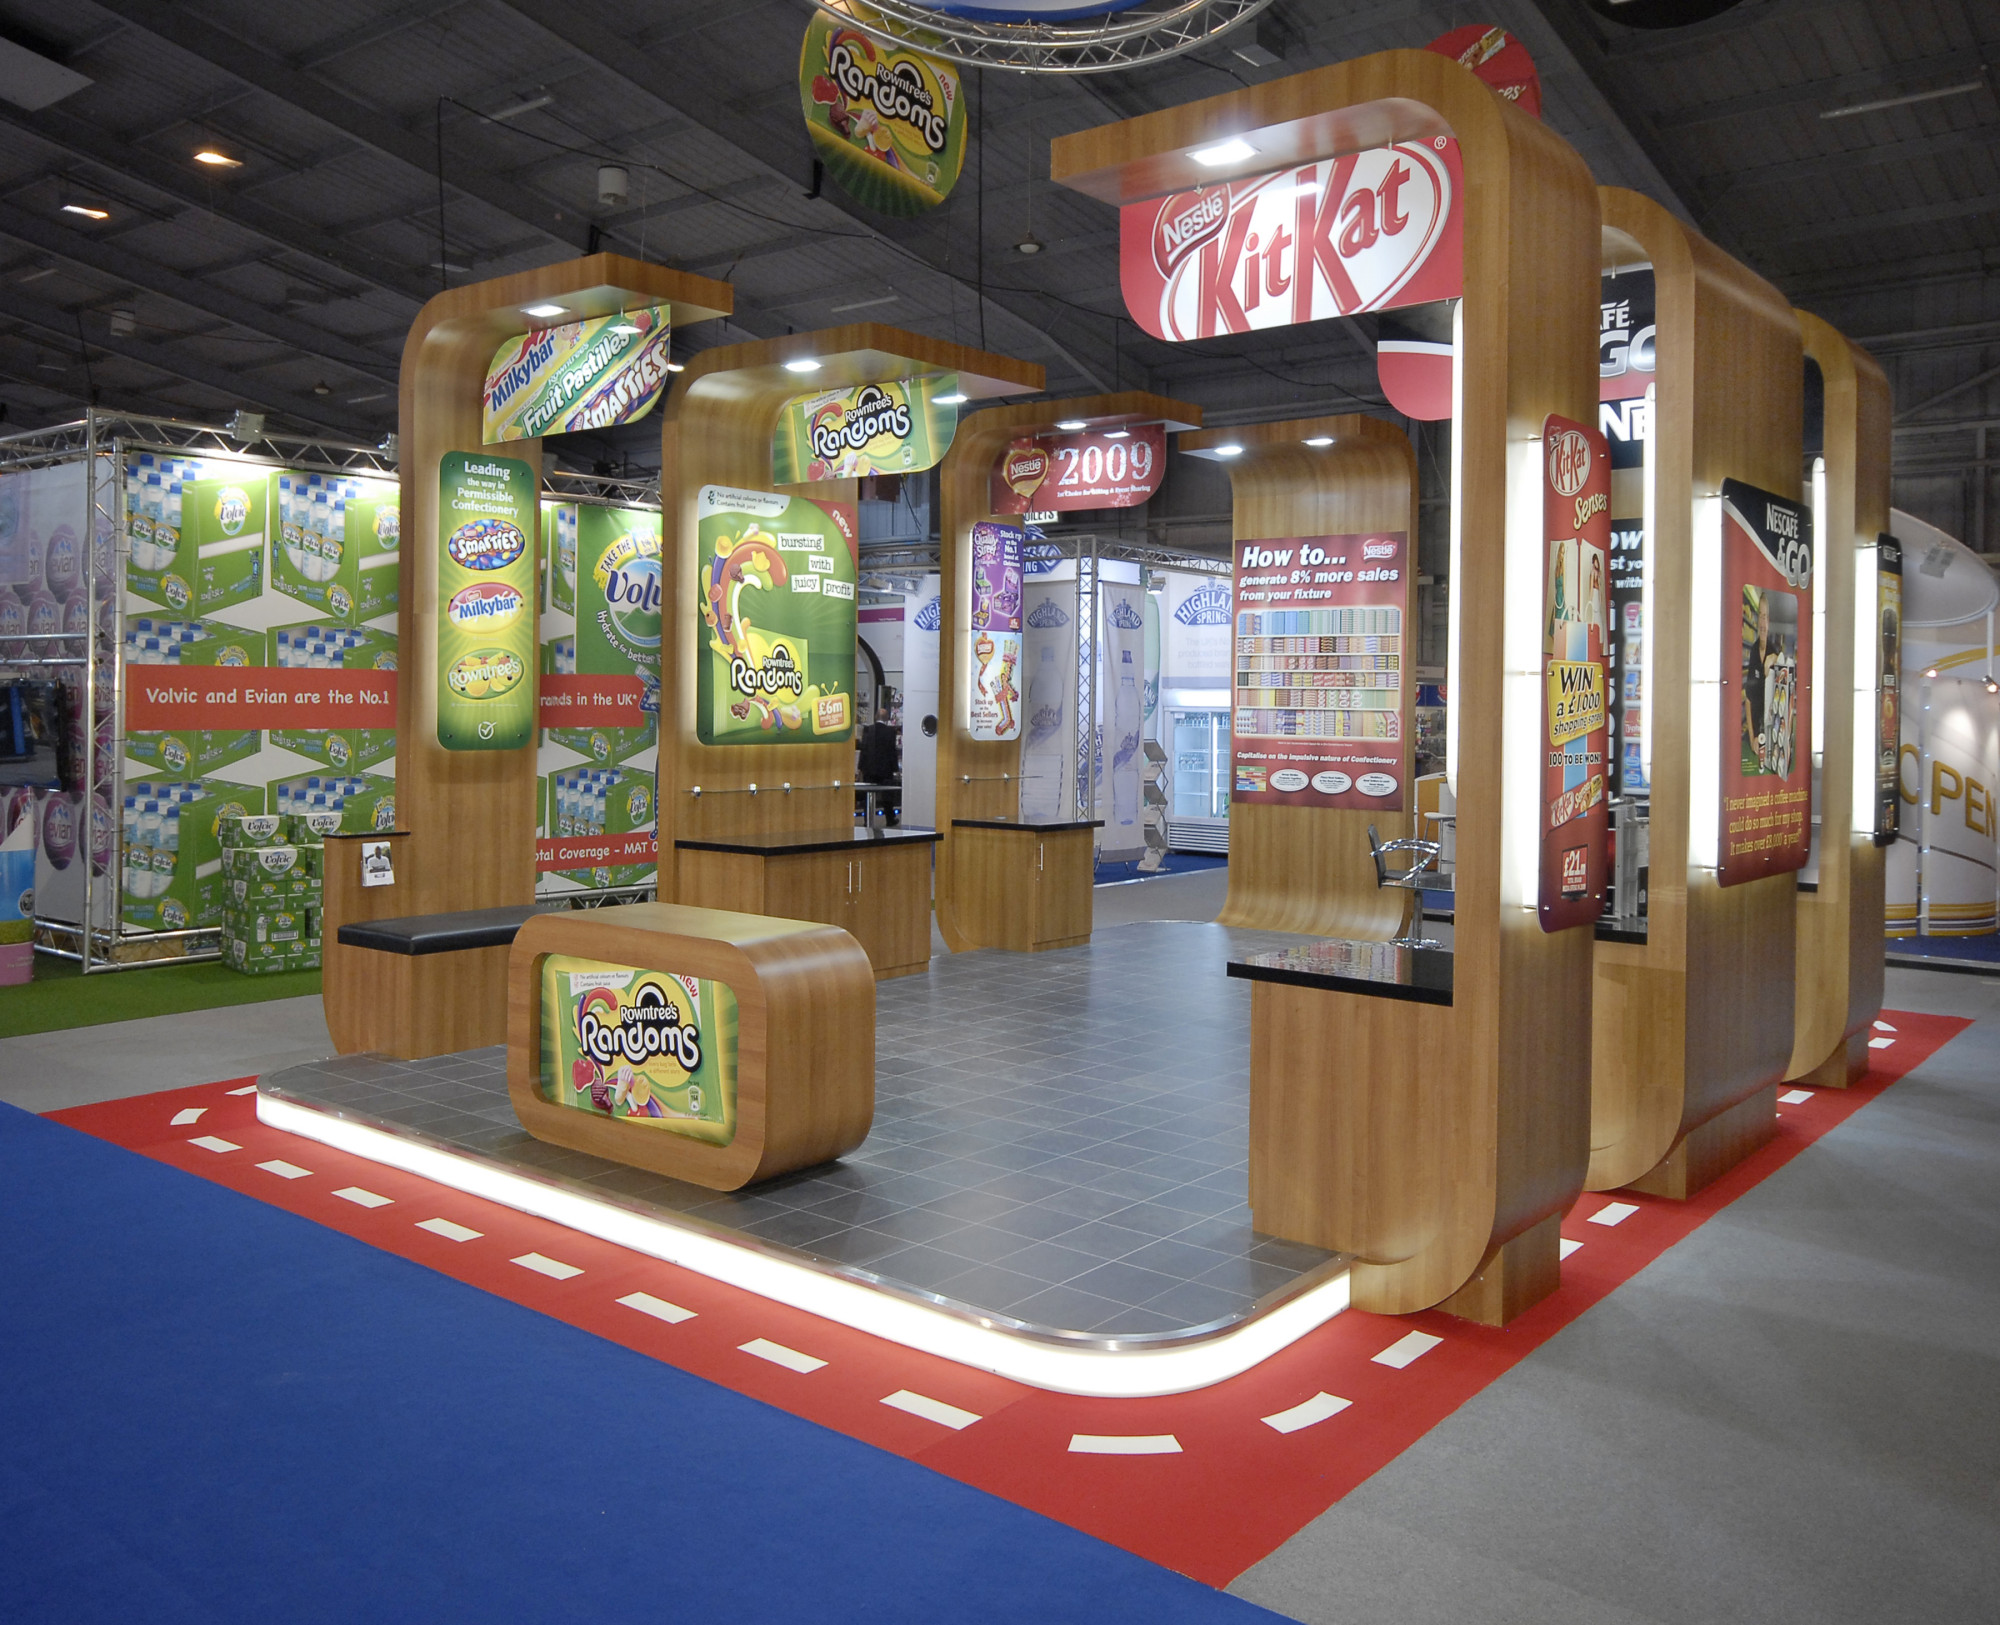 Exhibition Stand For Sale : Bespoke exhibition stands ⋆ kj exhibition display